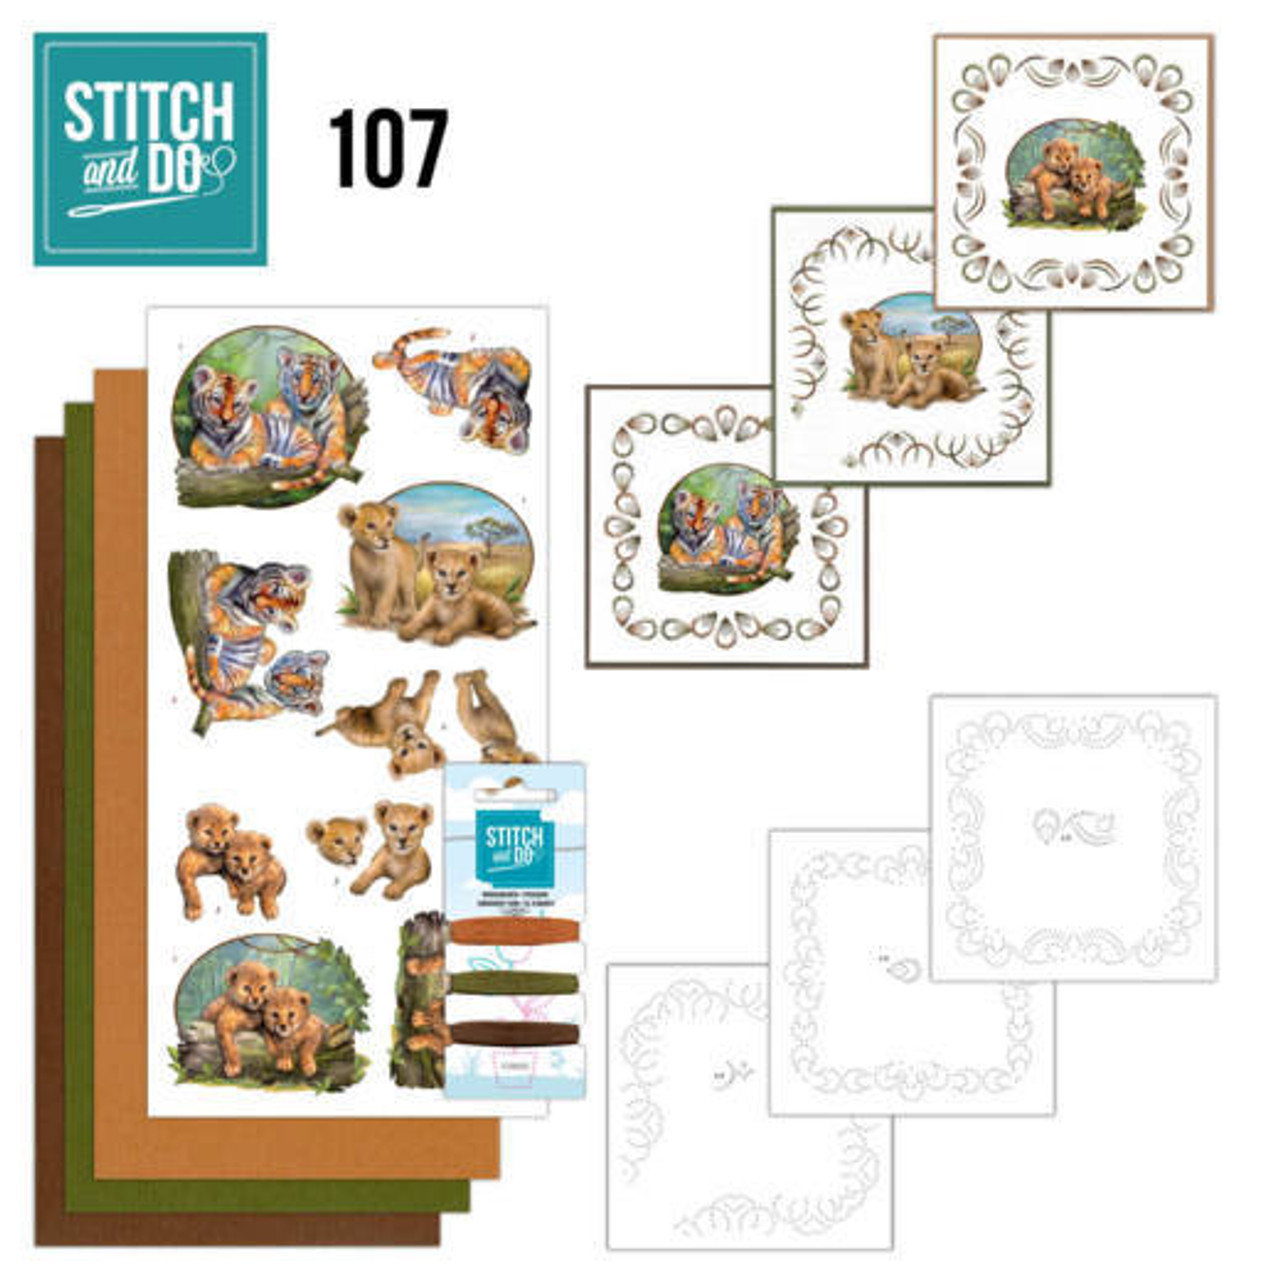 Stitch and Do 107 - Card Embroidery Kit - Wild Animals